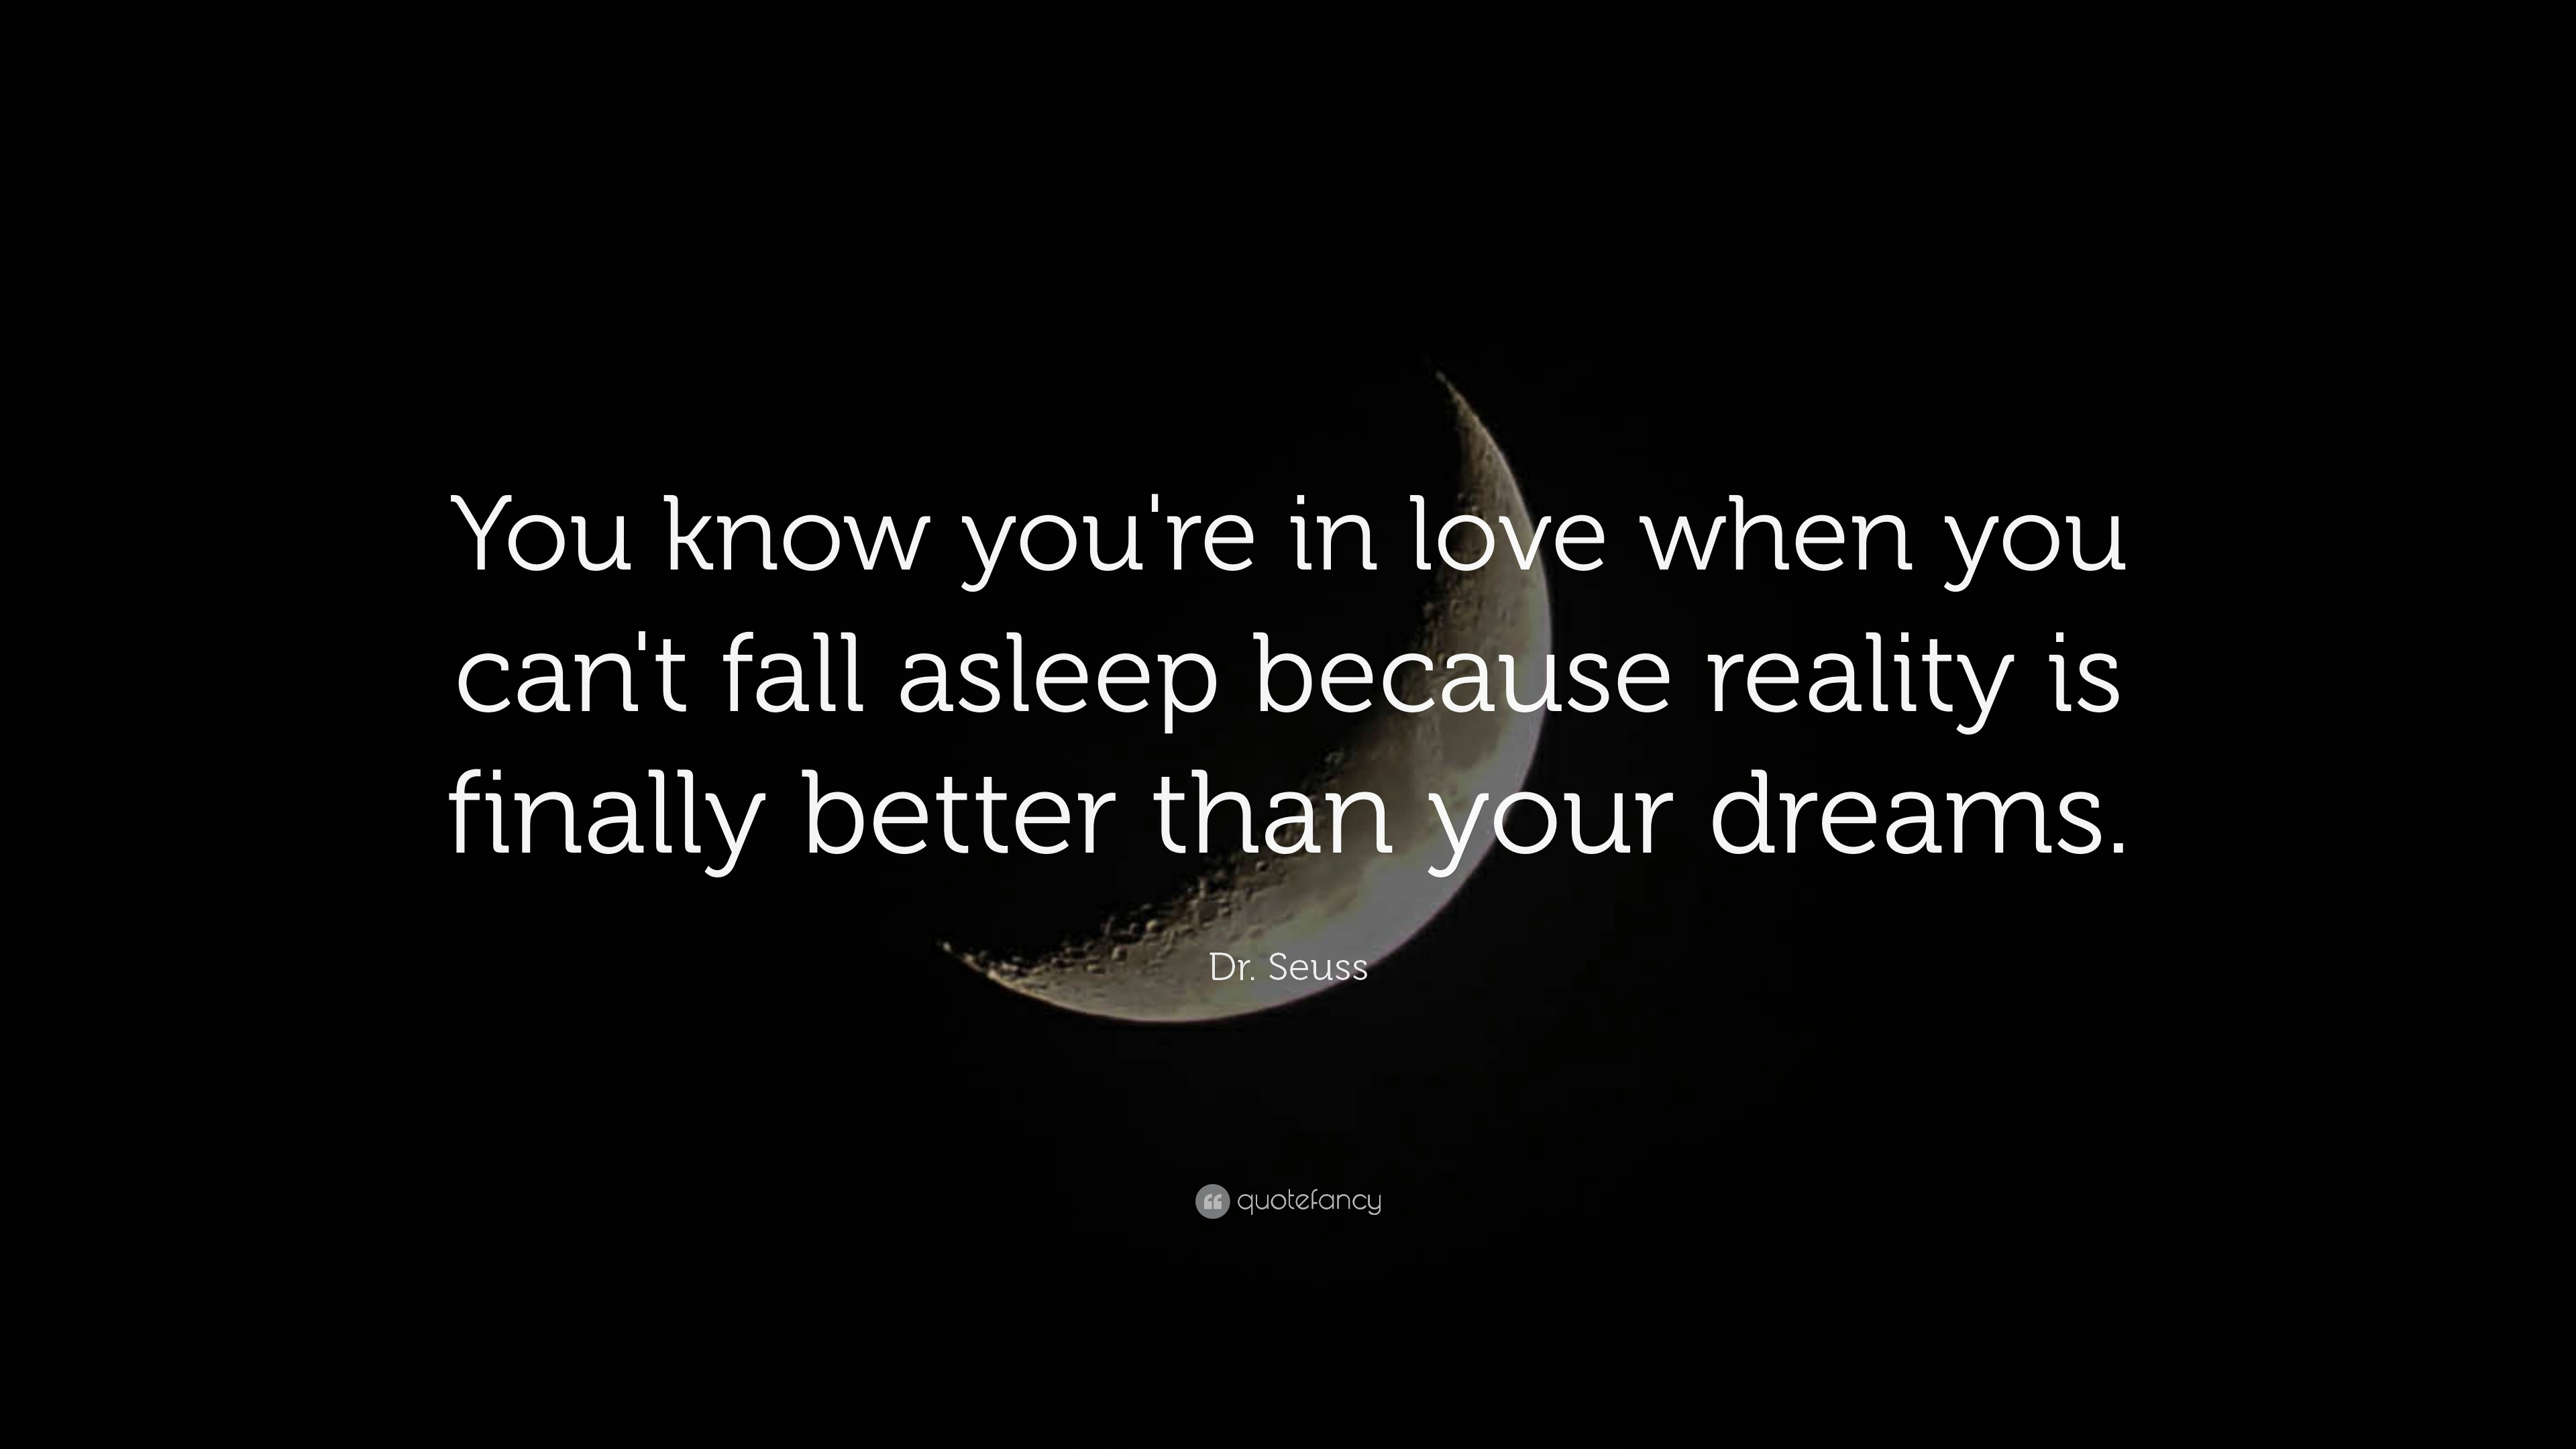 In Love Quotes Simple Love Quotes 26 Wallpapers  Quotefancy